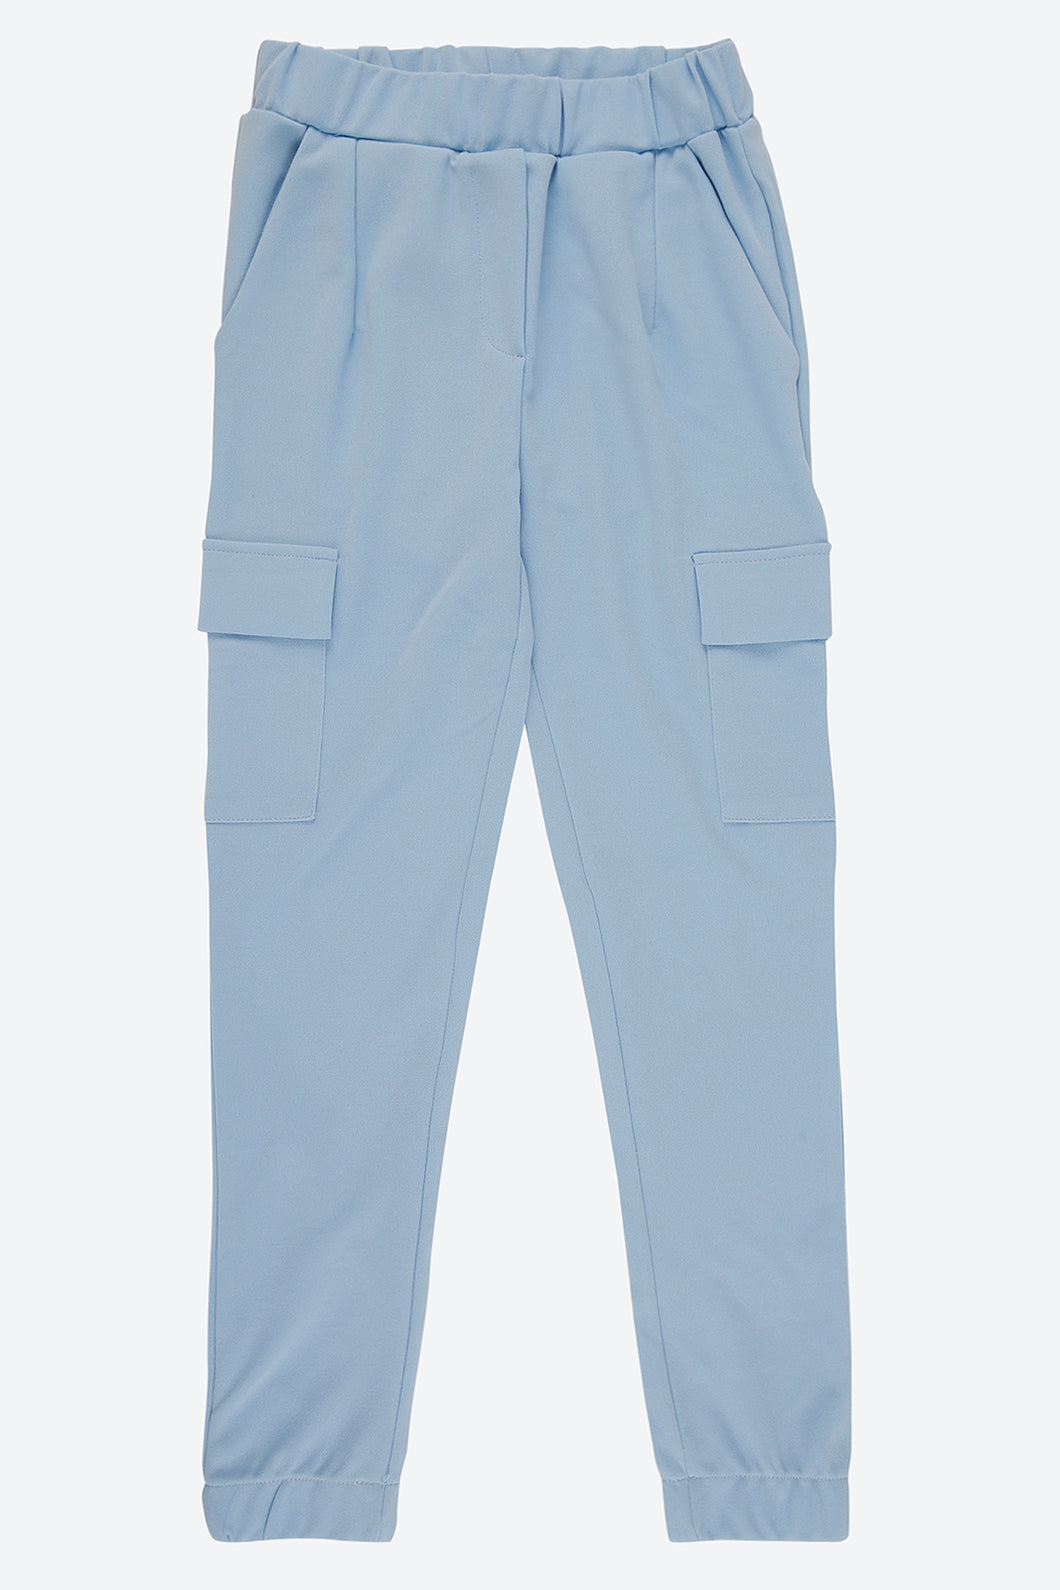 Blue Cargo Pant